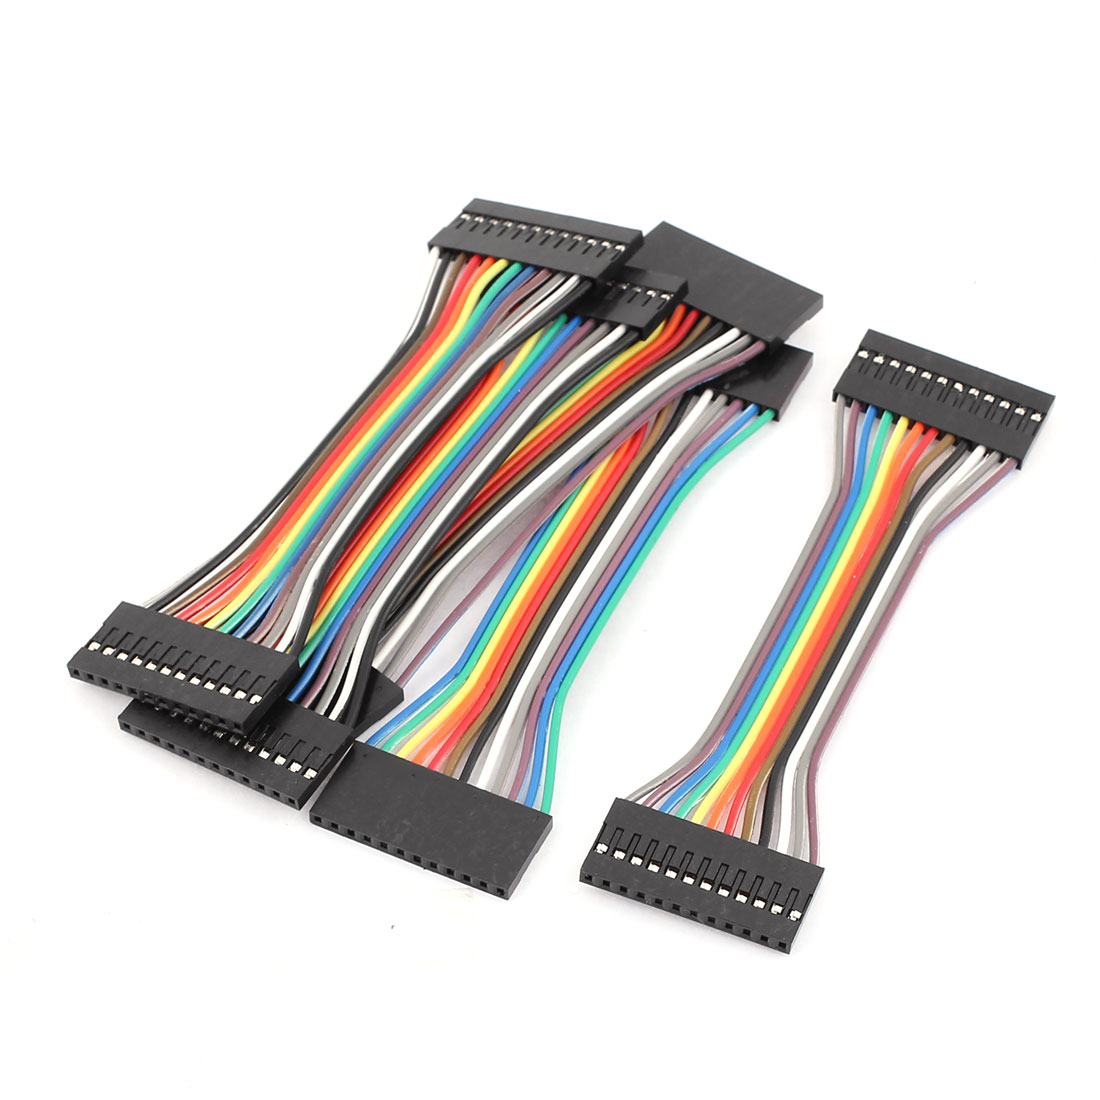 5 Pcs 2.54mm Pitch 12P Female Breadboard Double Head Jumper Wire Cable 10cm Length